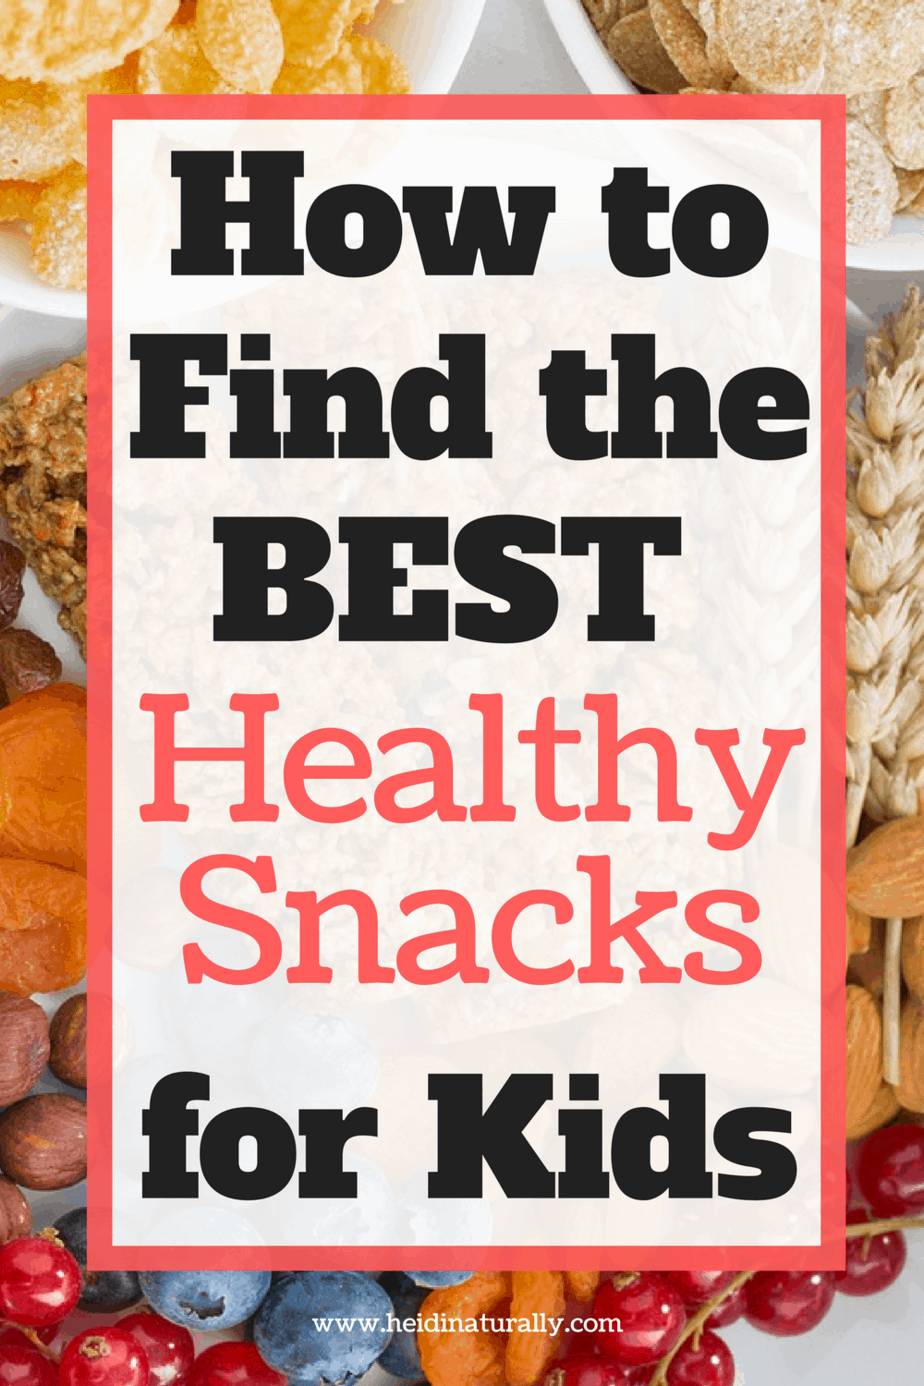 Learn what healthy snacks are good for kids and adults. Get recipes and ideas of what to make and get to help your family live in health.